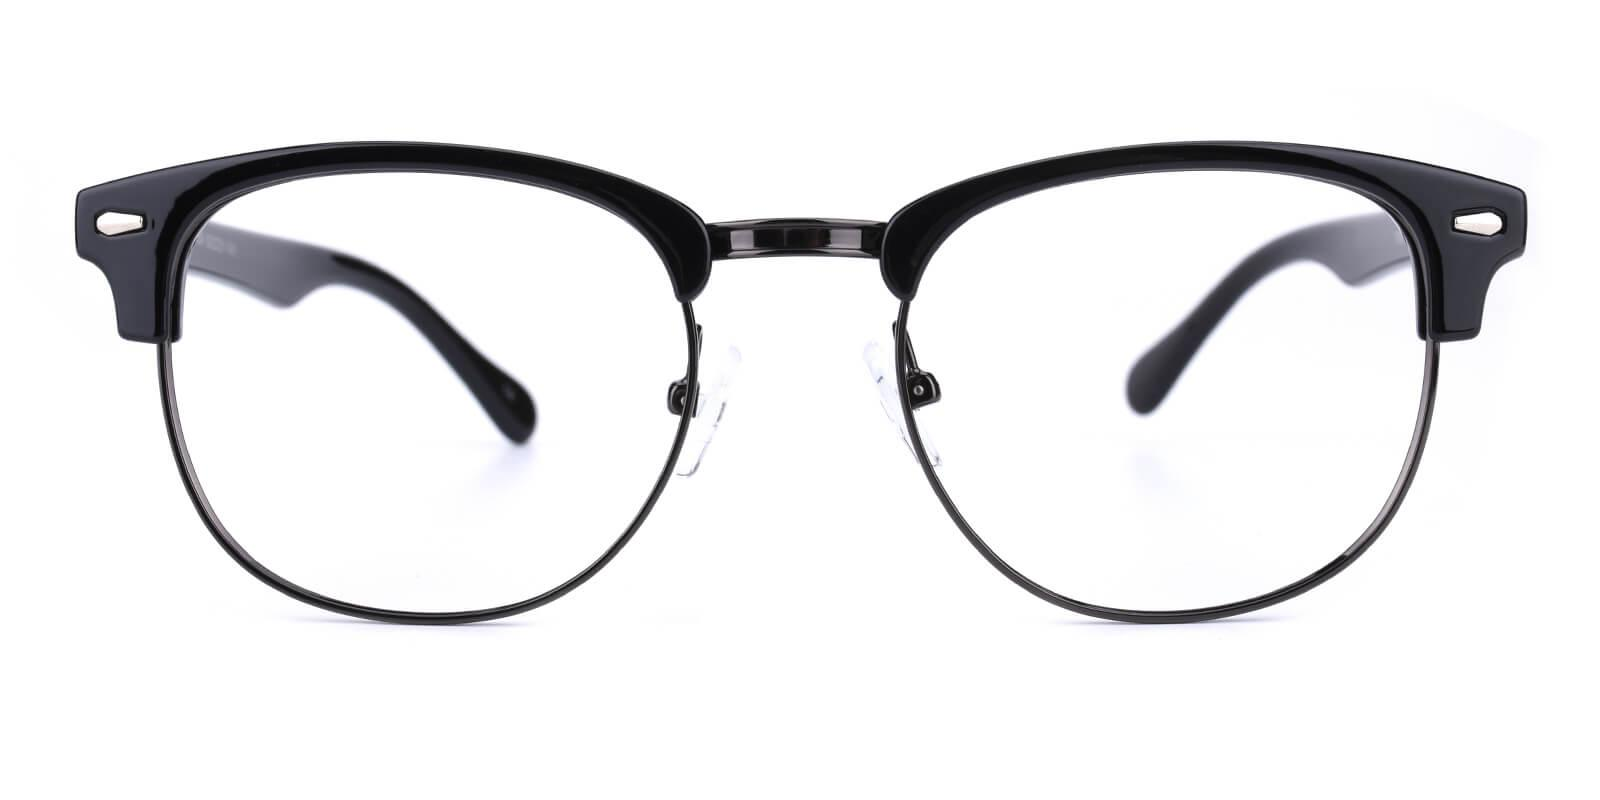 Ferrous-Black-Browline-Combination / Metal / Plastic-Eyeglasses-additional2